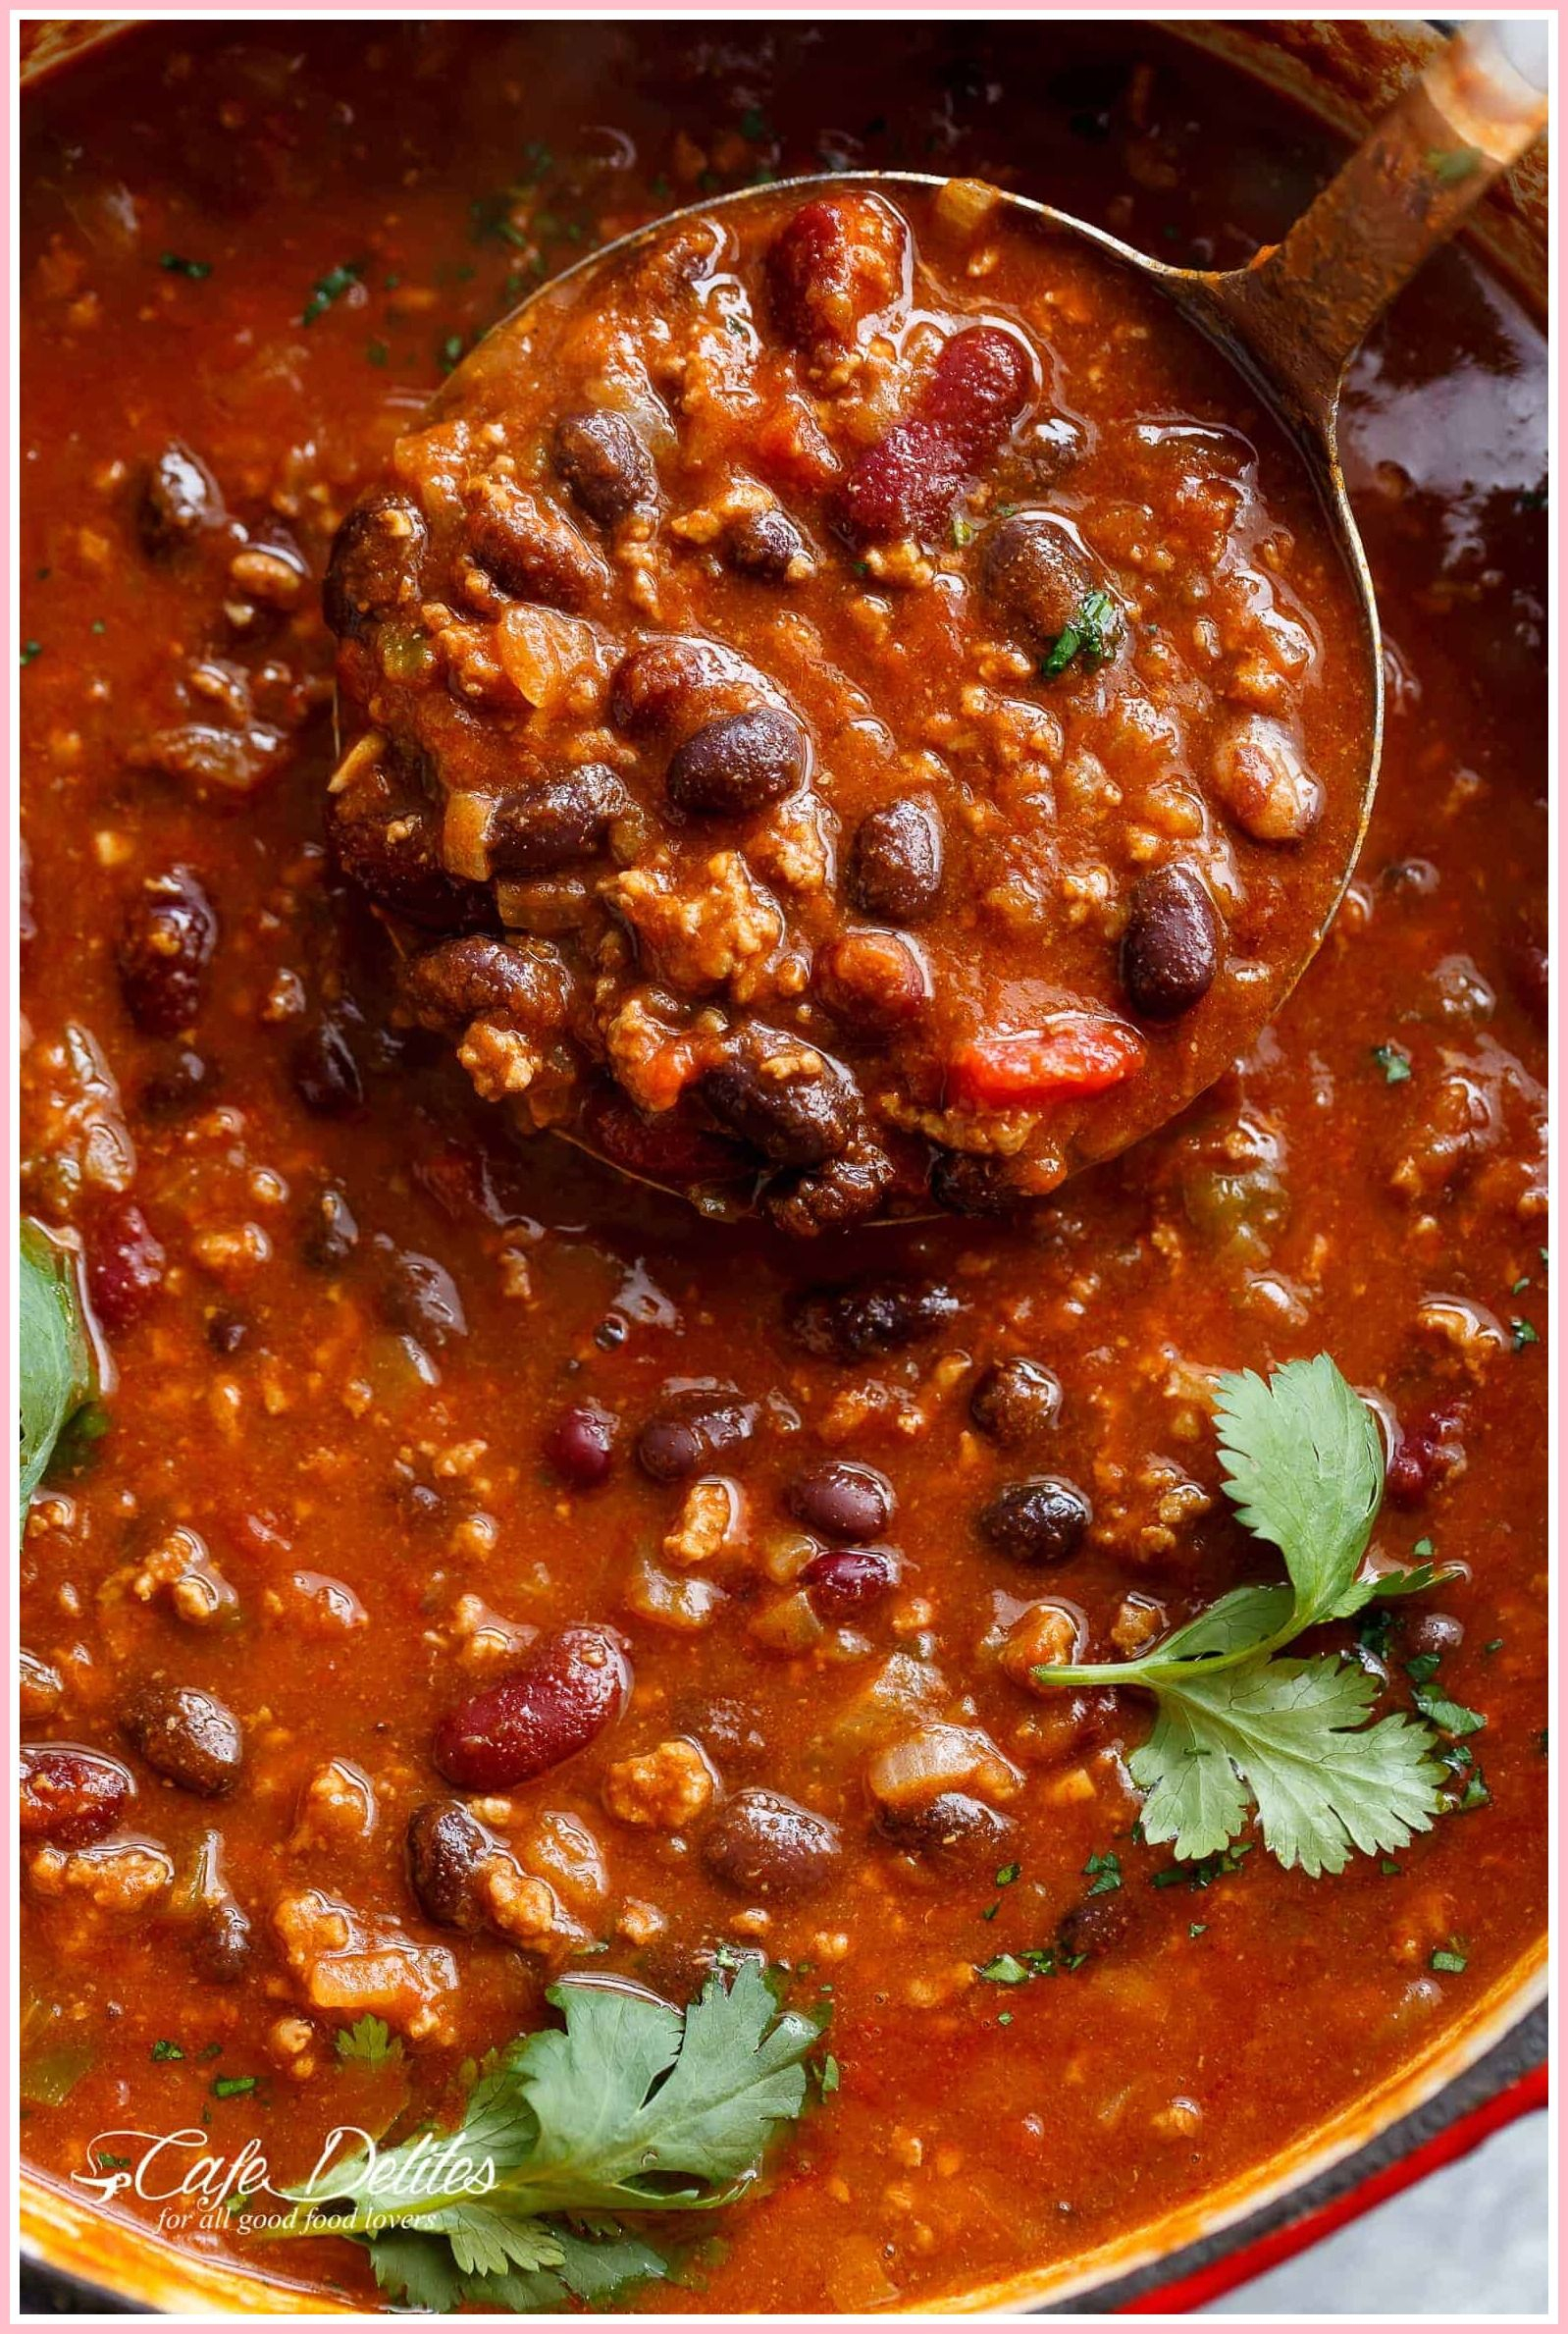 118 Reference Of Ground Beef Chili Recipe Epicurious In 2020 Beef Chili Recipe Ground Beef Chili Recipes Leftover Ground Beef Recipe